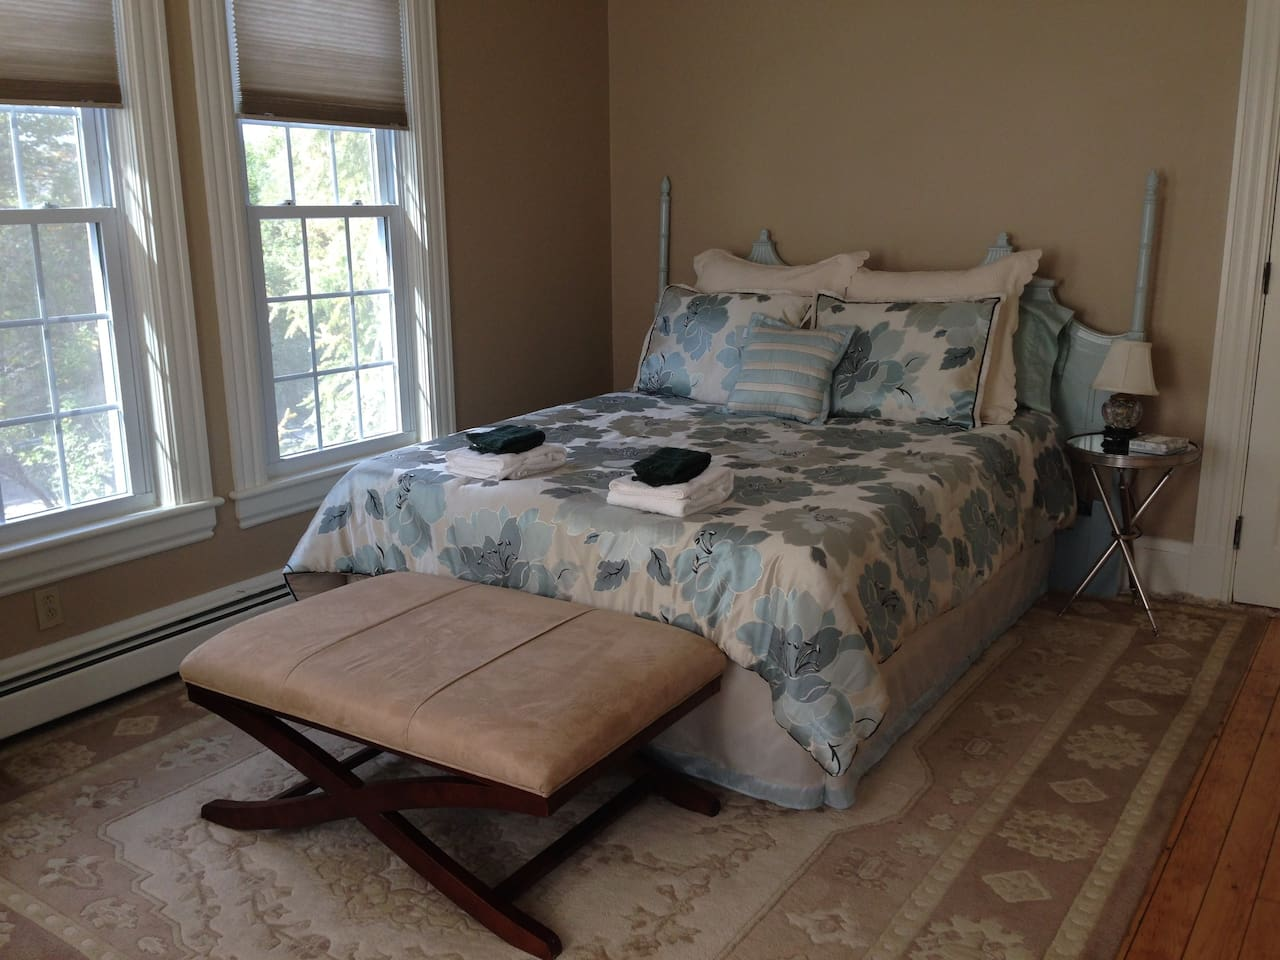 Our largest guest room, the Turret Room features a by window, Tempur-Pedic queen with featherbed topper, leather recliner, oriental rugs, Asian decor